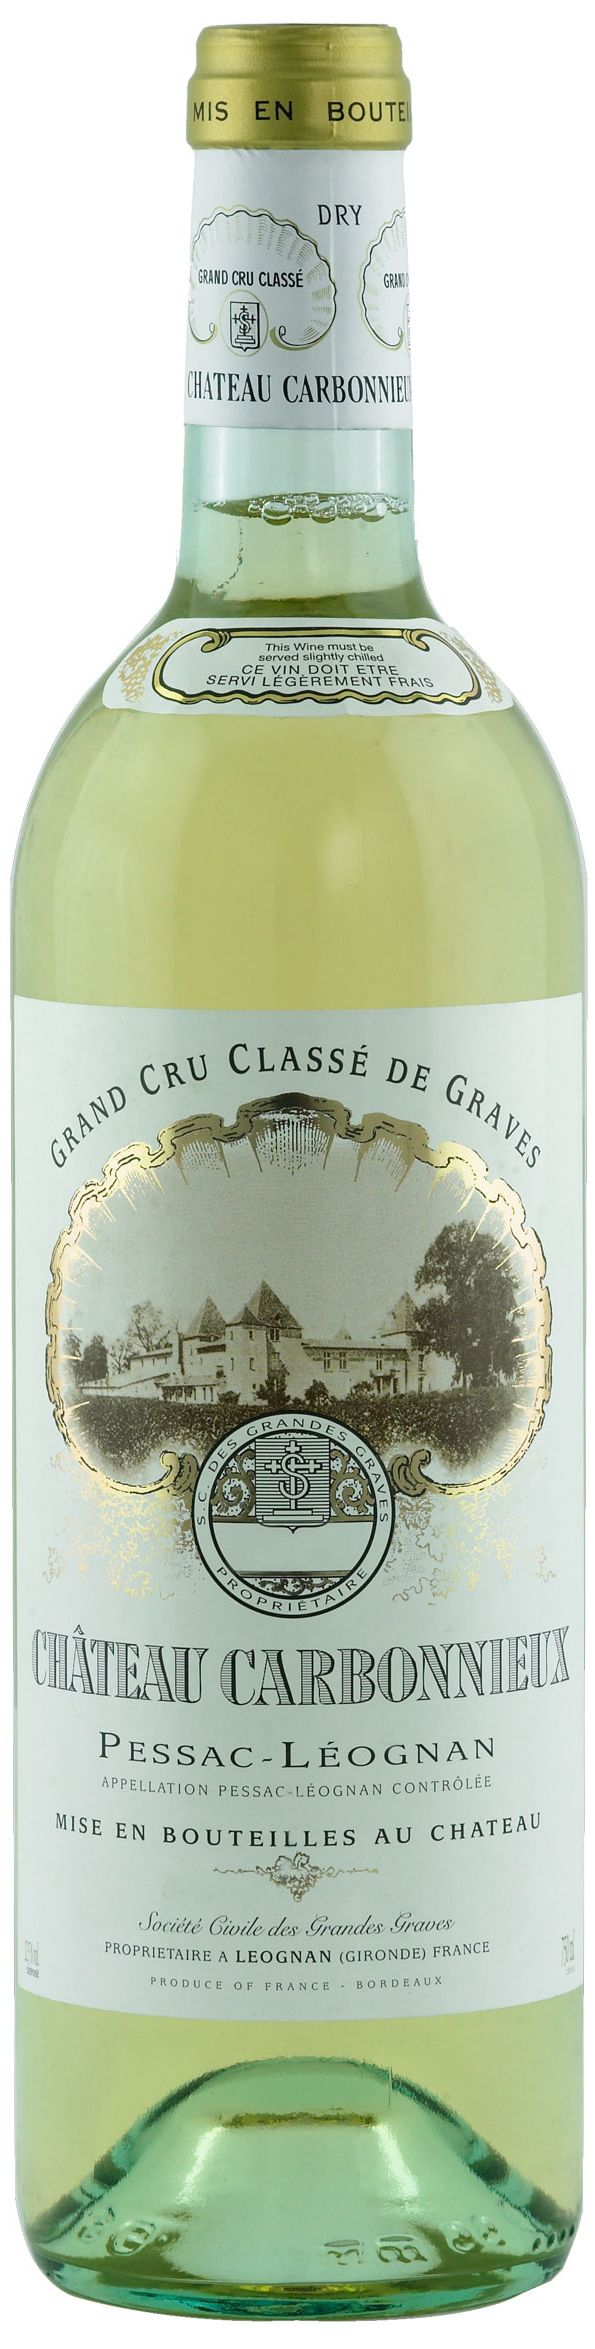 Chateau Carbonnieux, Grand Cru Classe, 2006